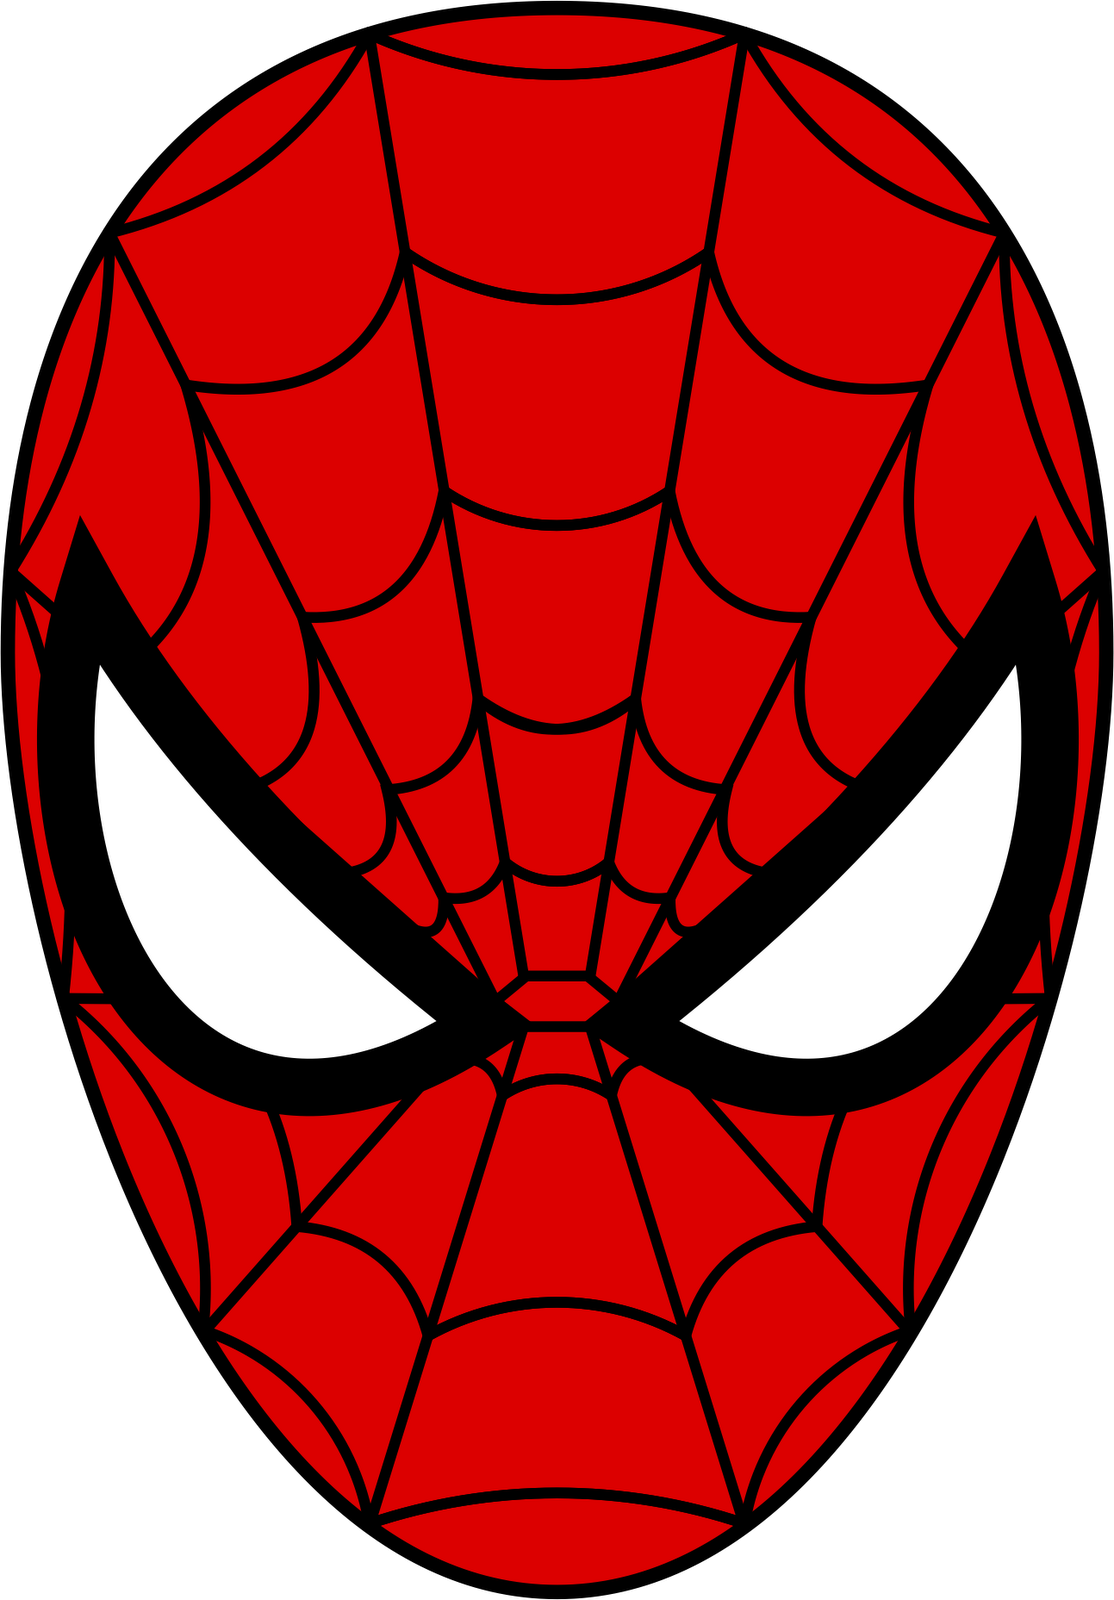 The Amazing Spider-Man (free download vector) ~ DENIZIGNKO